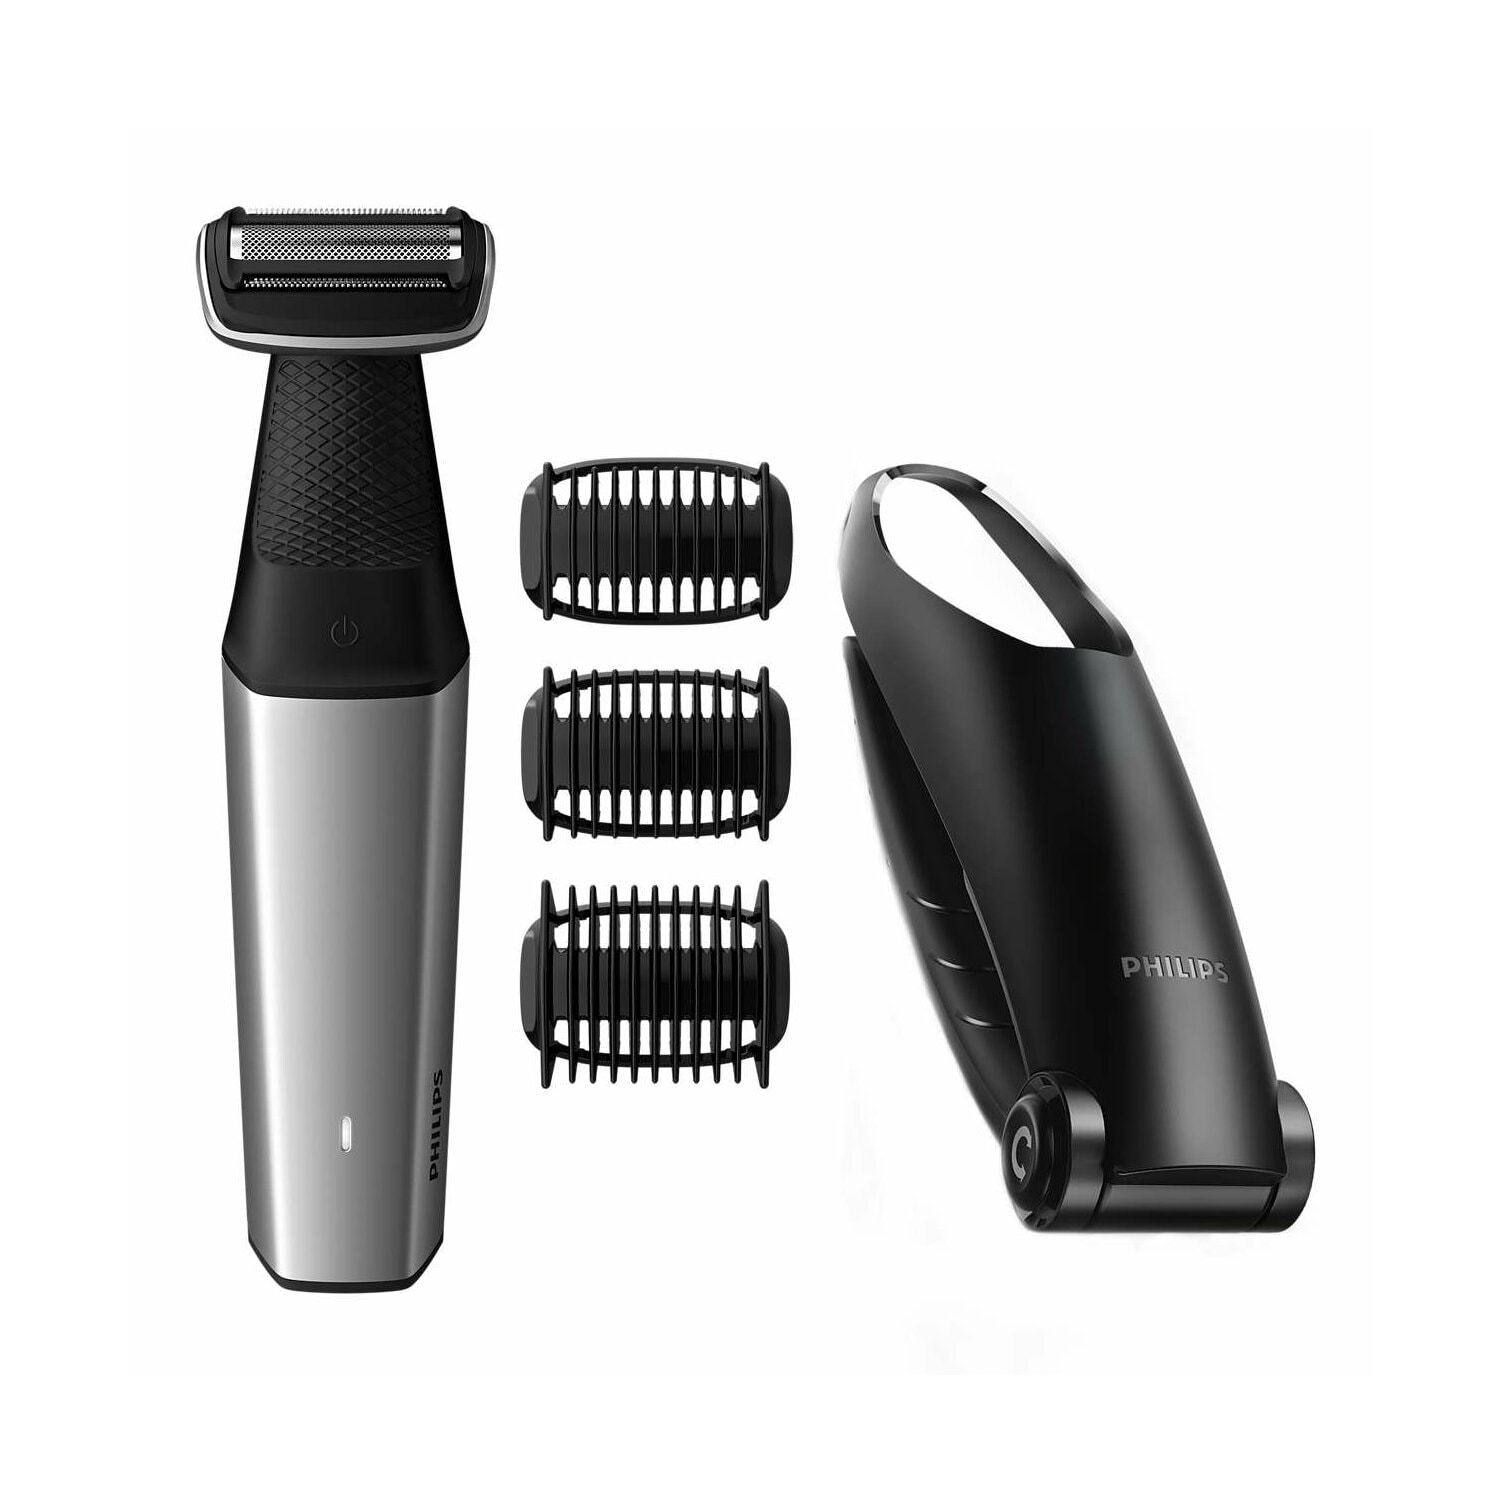 Golarka PHILIPS Bodygroom series 5000 BG5020/15